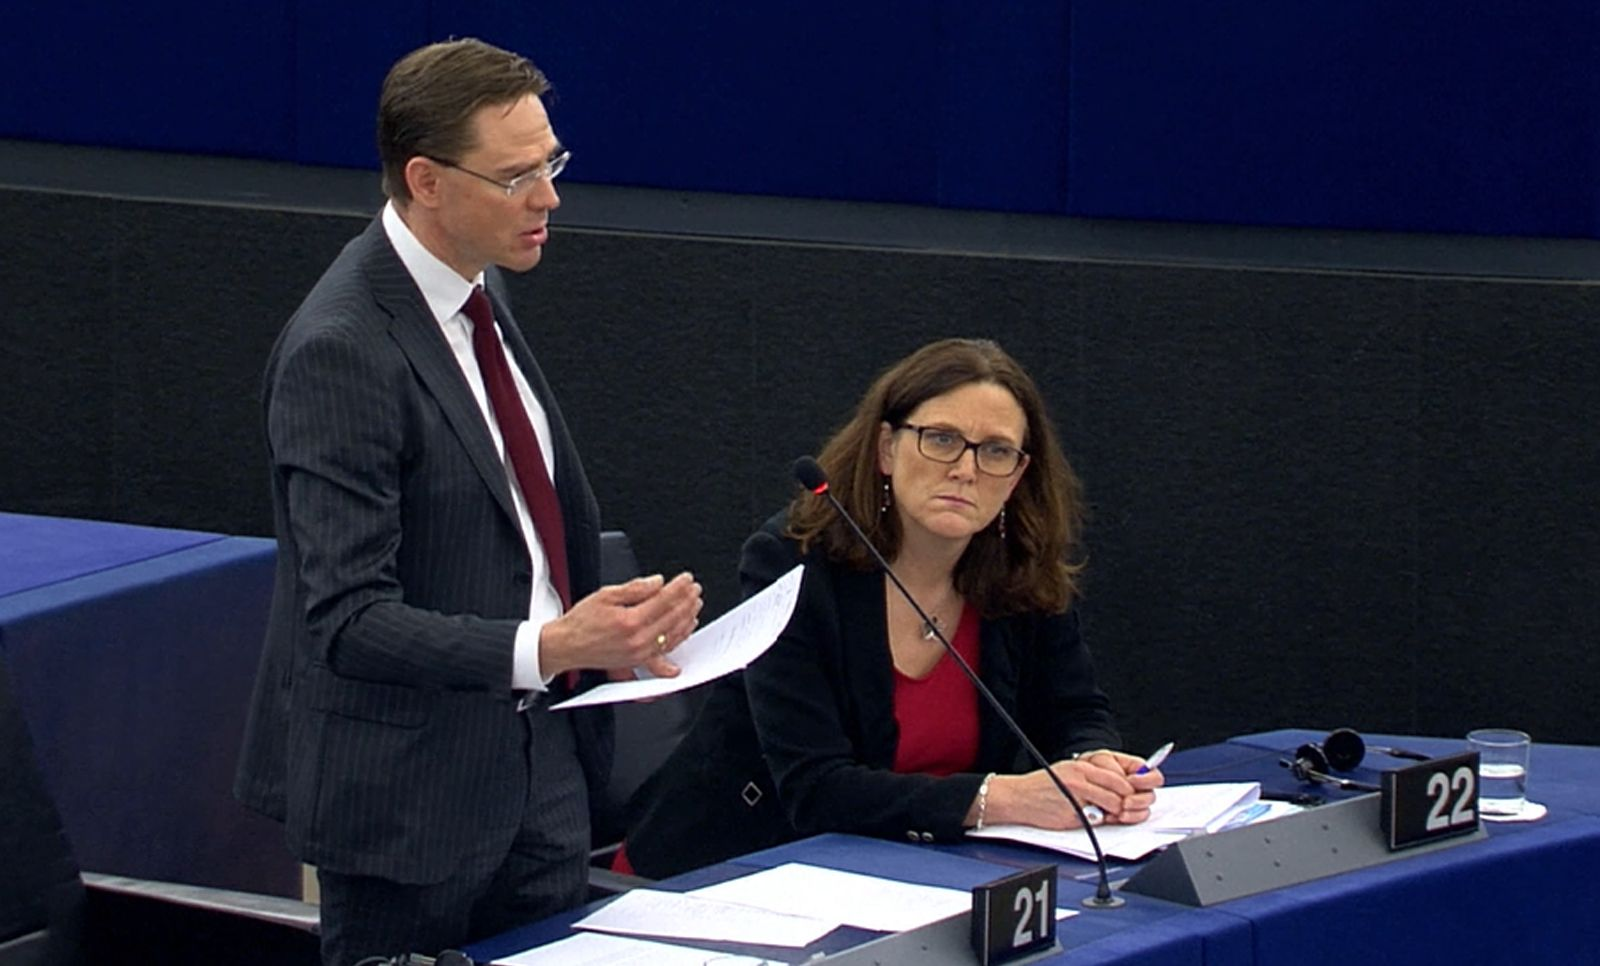 Jyrki Katainen (Vice President of the EC in charge of Jobs, Growth, Investment and Competitiveness) talks on trump's metal taxes at the plenary session of the EP on 14th March 2018. sitting on the right Ceilia Malmström (Member of the EC in charge of Trade and member of the EU Parliament from the Alliance of Liberals and Democrats for Europe -Sweden-). © EU Parliament